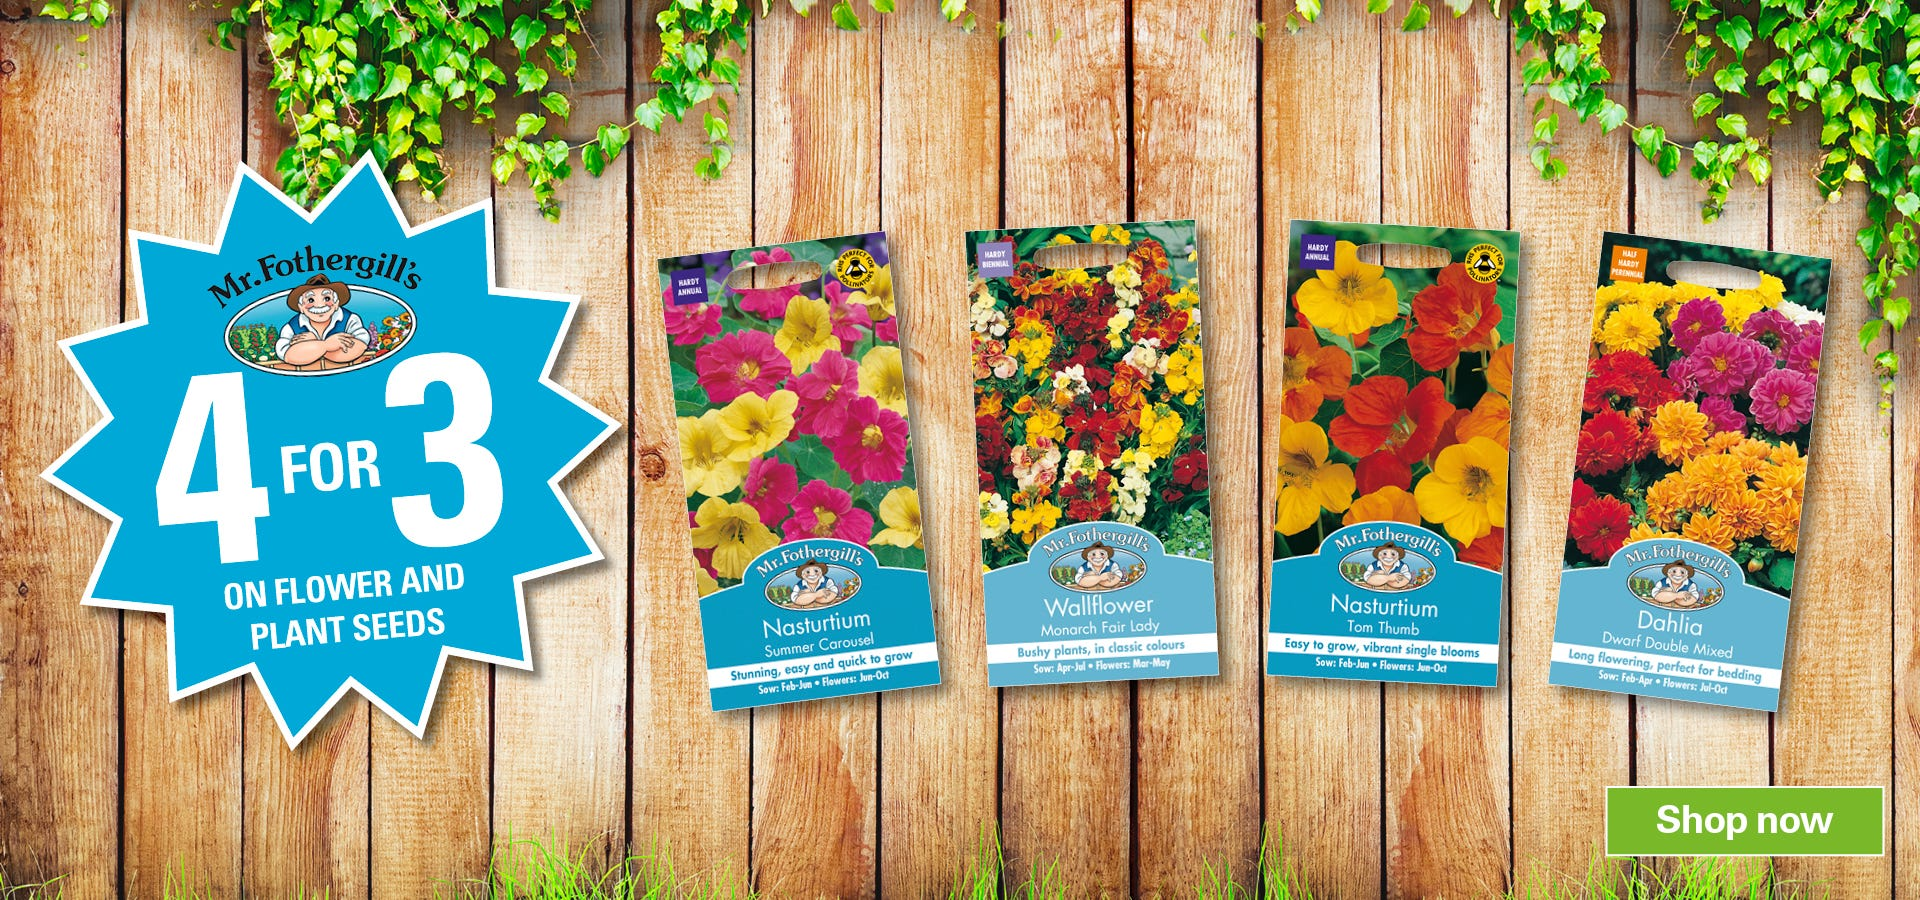 Get 4 for 3 on Seeds